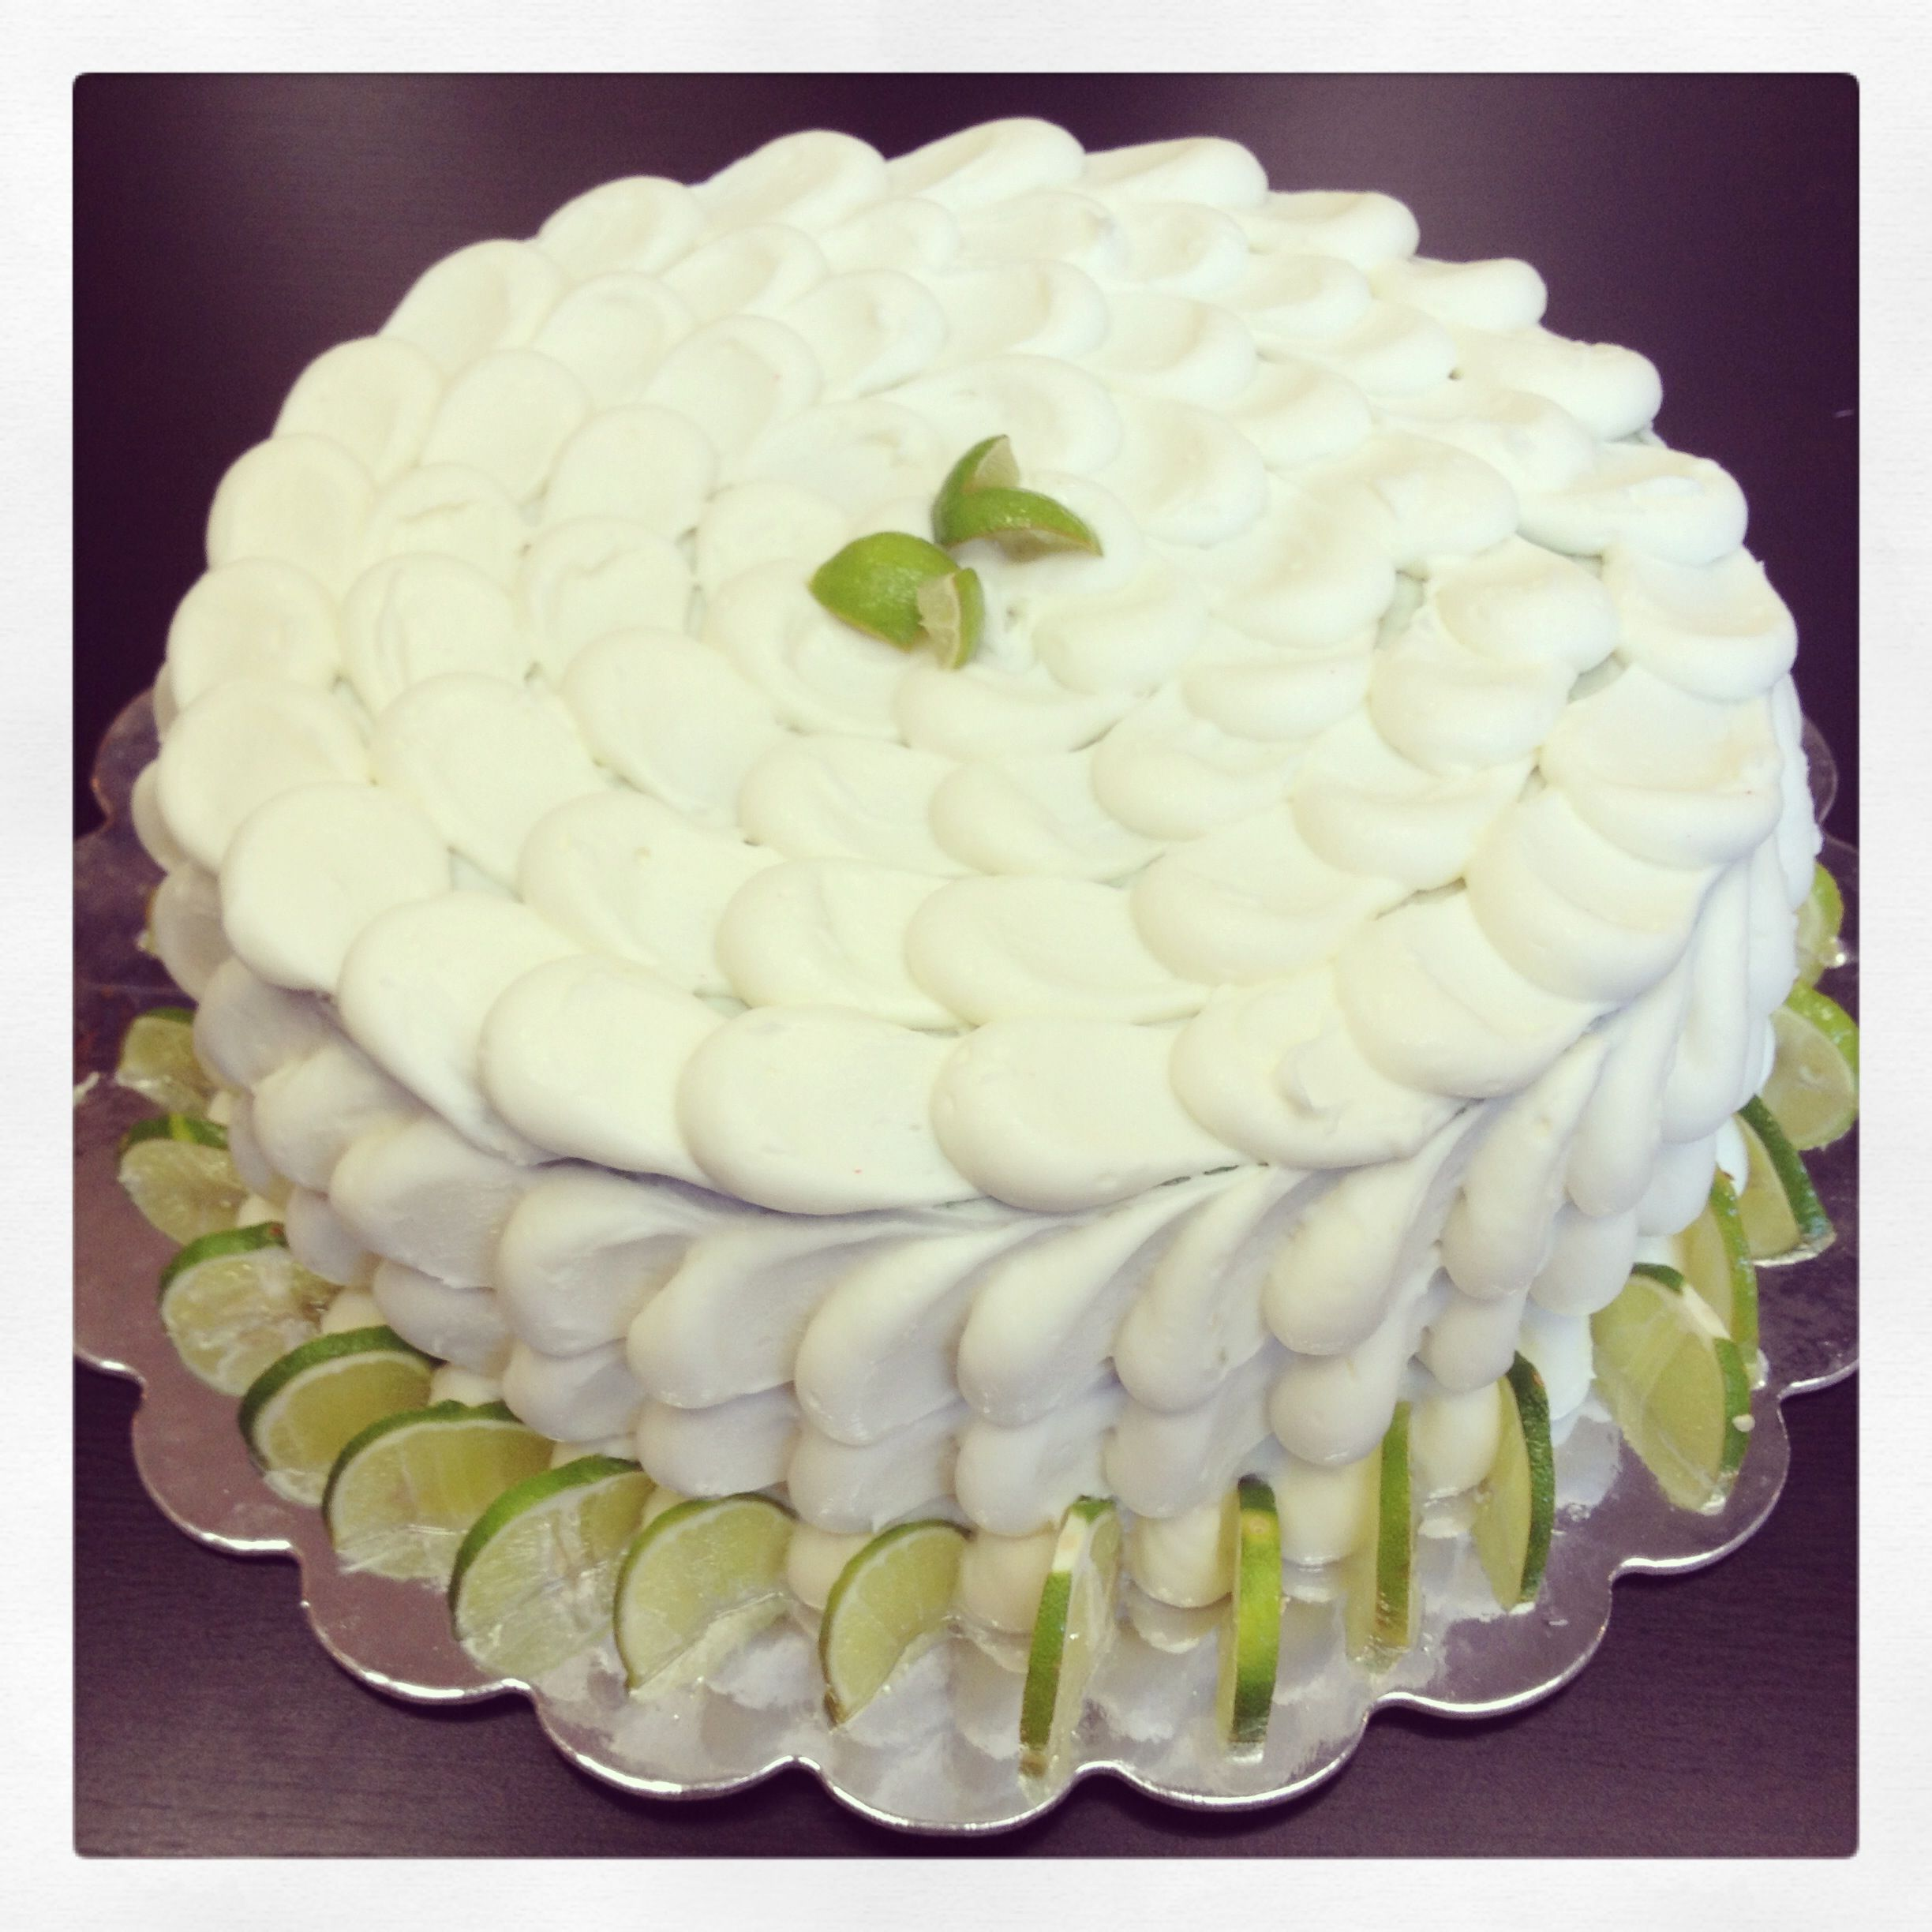 ... cake w i th key lime cream cheese frost i ng key lime cake with lime